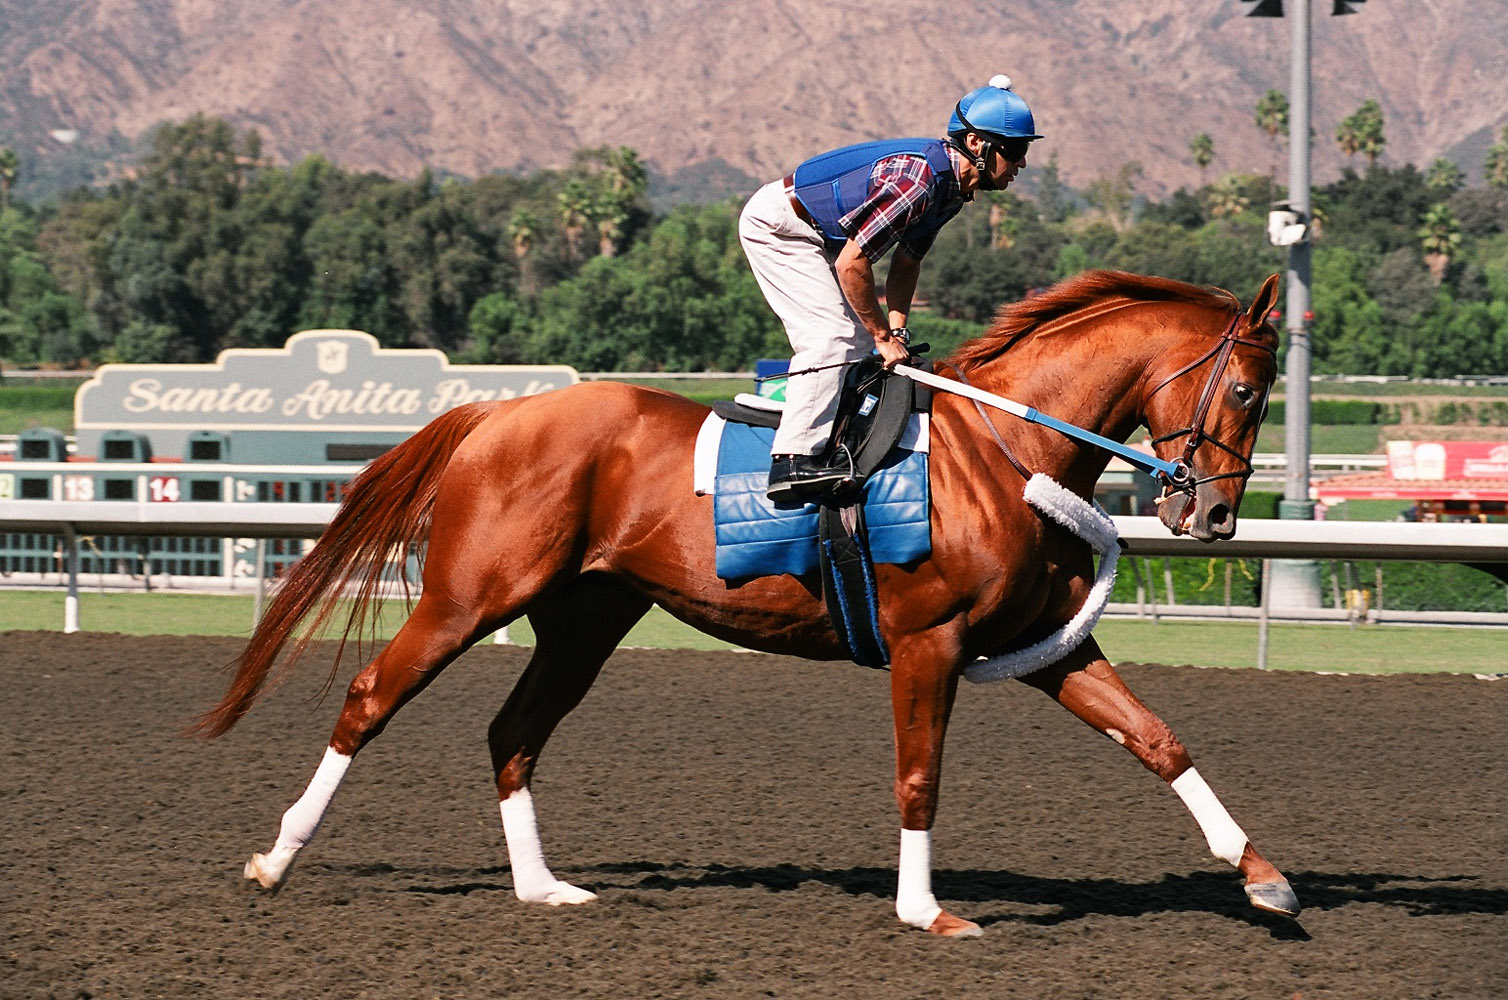 Curlin prepping for the Breeders' Cup Classic at Santa Anita, October 2008 (Bill Mochon/Museum Collection)